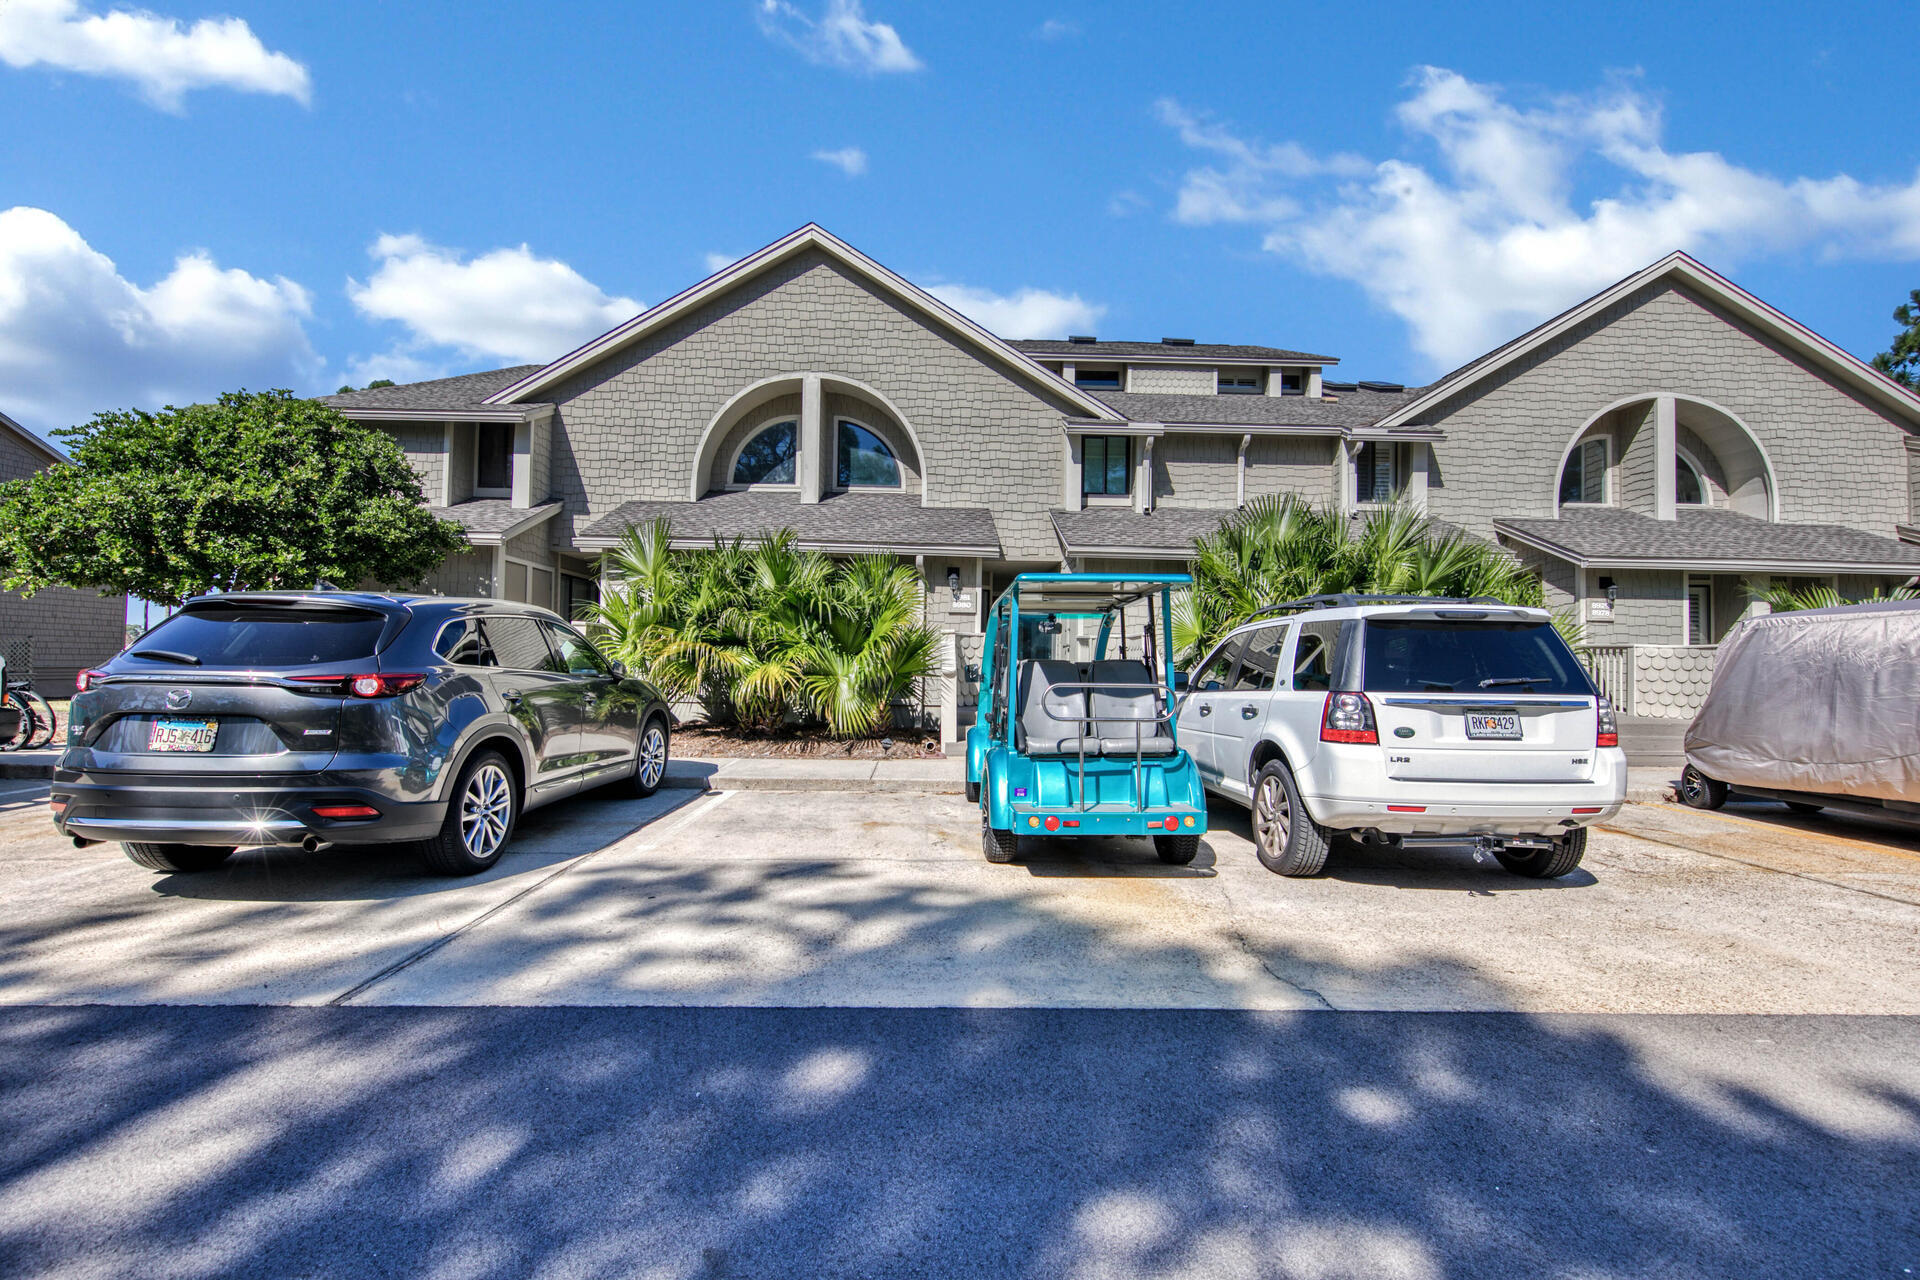 Beautifully renovated fully furnished townhome in SanDestin Resort with Golf Cart included.  Enjoy unobstructed views of Choctawhatchee Bay. Located right next to the newly constructed Osprey Point you're within walking distance to the Resort Pool, the Marina and Baytowne Wharf and a quick Golf Cart ride to the beach, Tennis Center, world class golf, shopping and dinning. Inside the home, enjoy large Cathedral Ceilings, Tile plank flooring, renovated bathrooms and kitchen with stainless steel appliances and outside storage closest for all your beach gear.   All this plus, a practically new 6 seater golf cart to add to the experience.  Add that it's the perfect seat for the weekly Baytowne Fireworks show and you know this is the place to live!!  COME SEE!